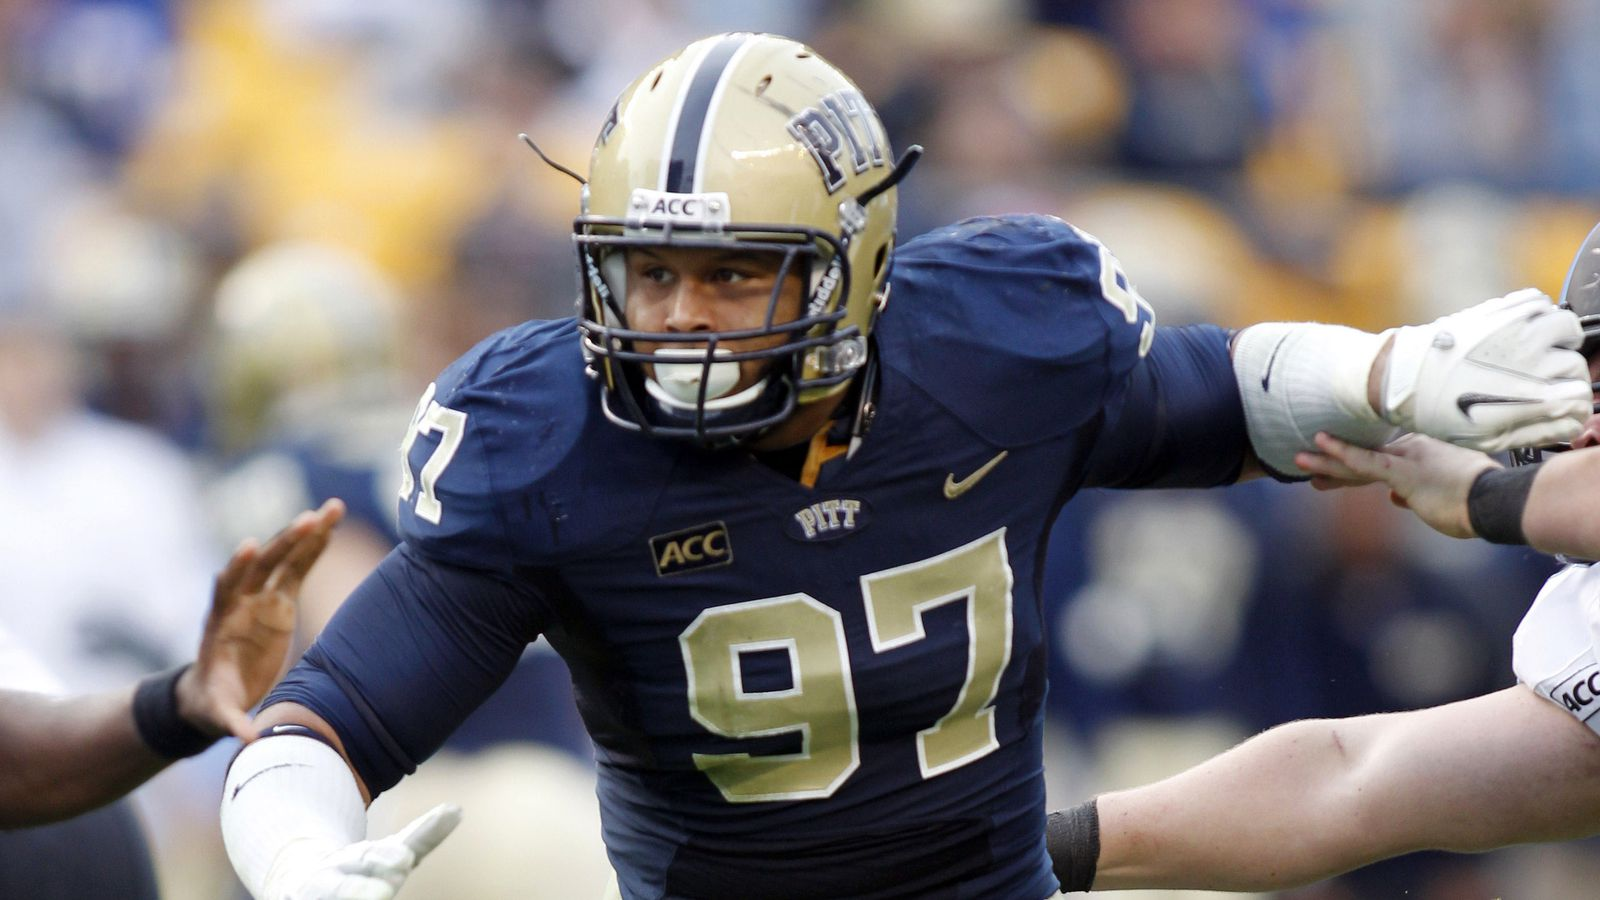 Mock Draft: Titans Grab Aaron Donald at #11